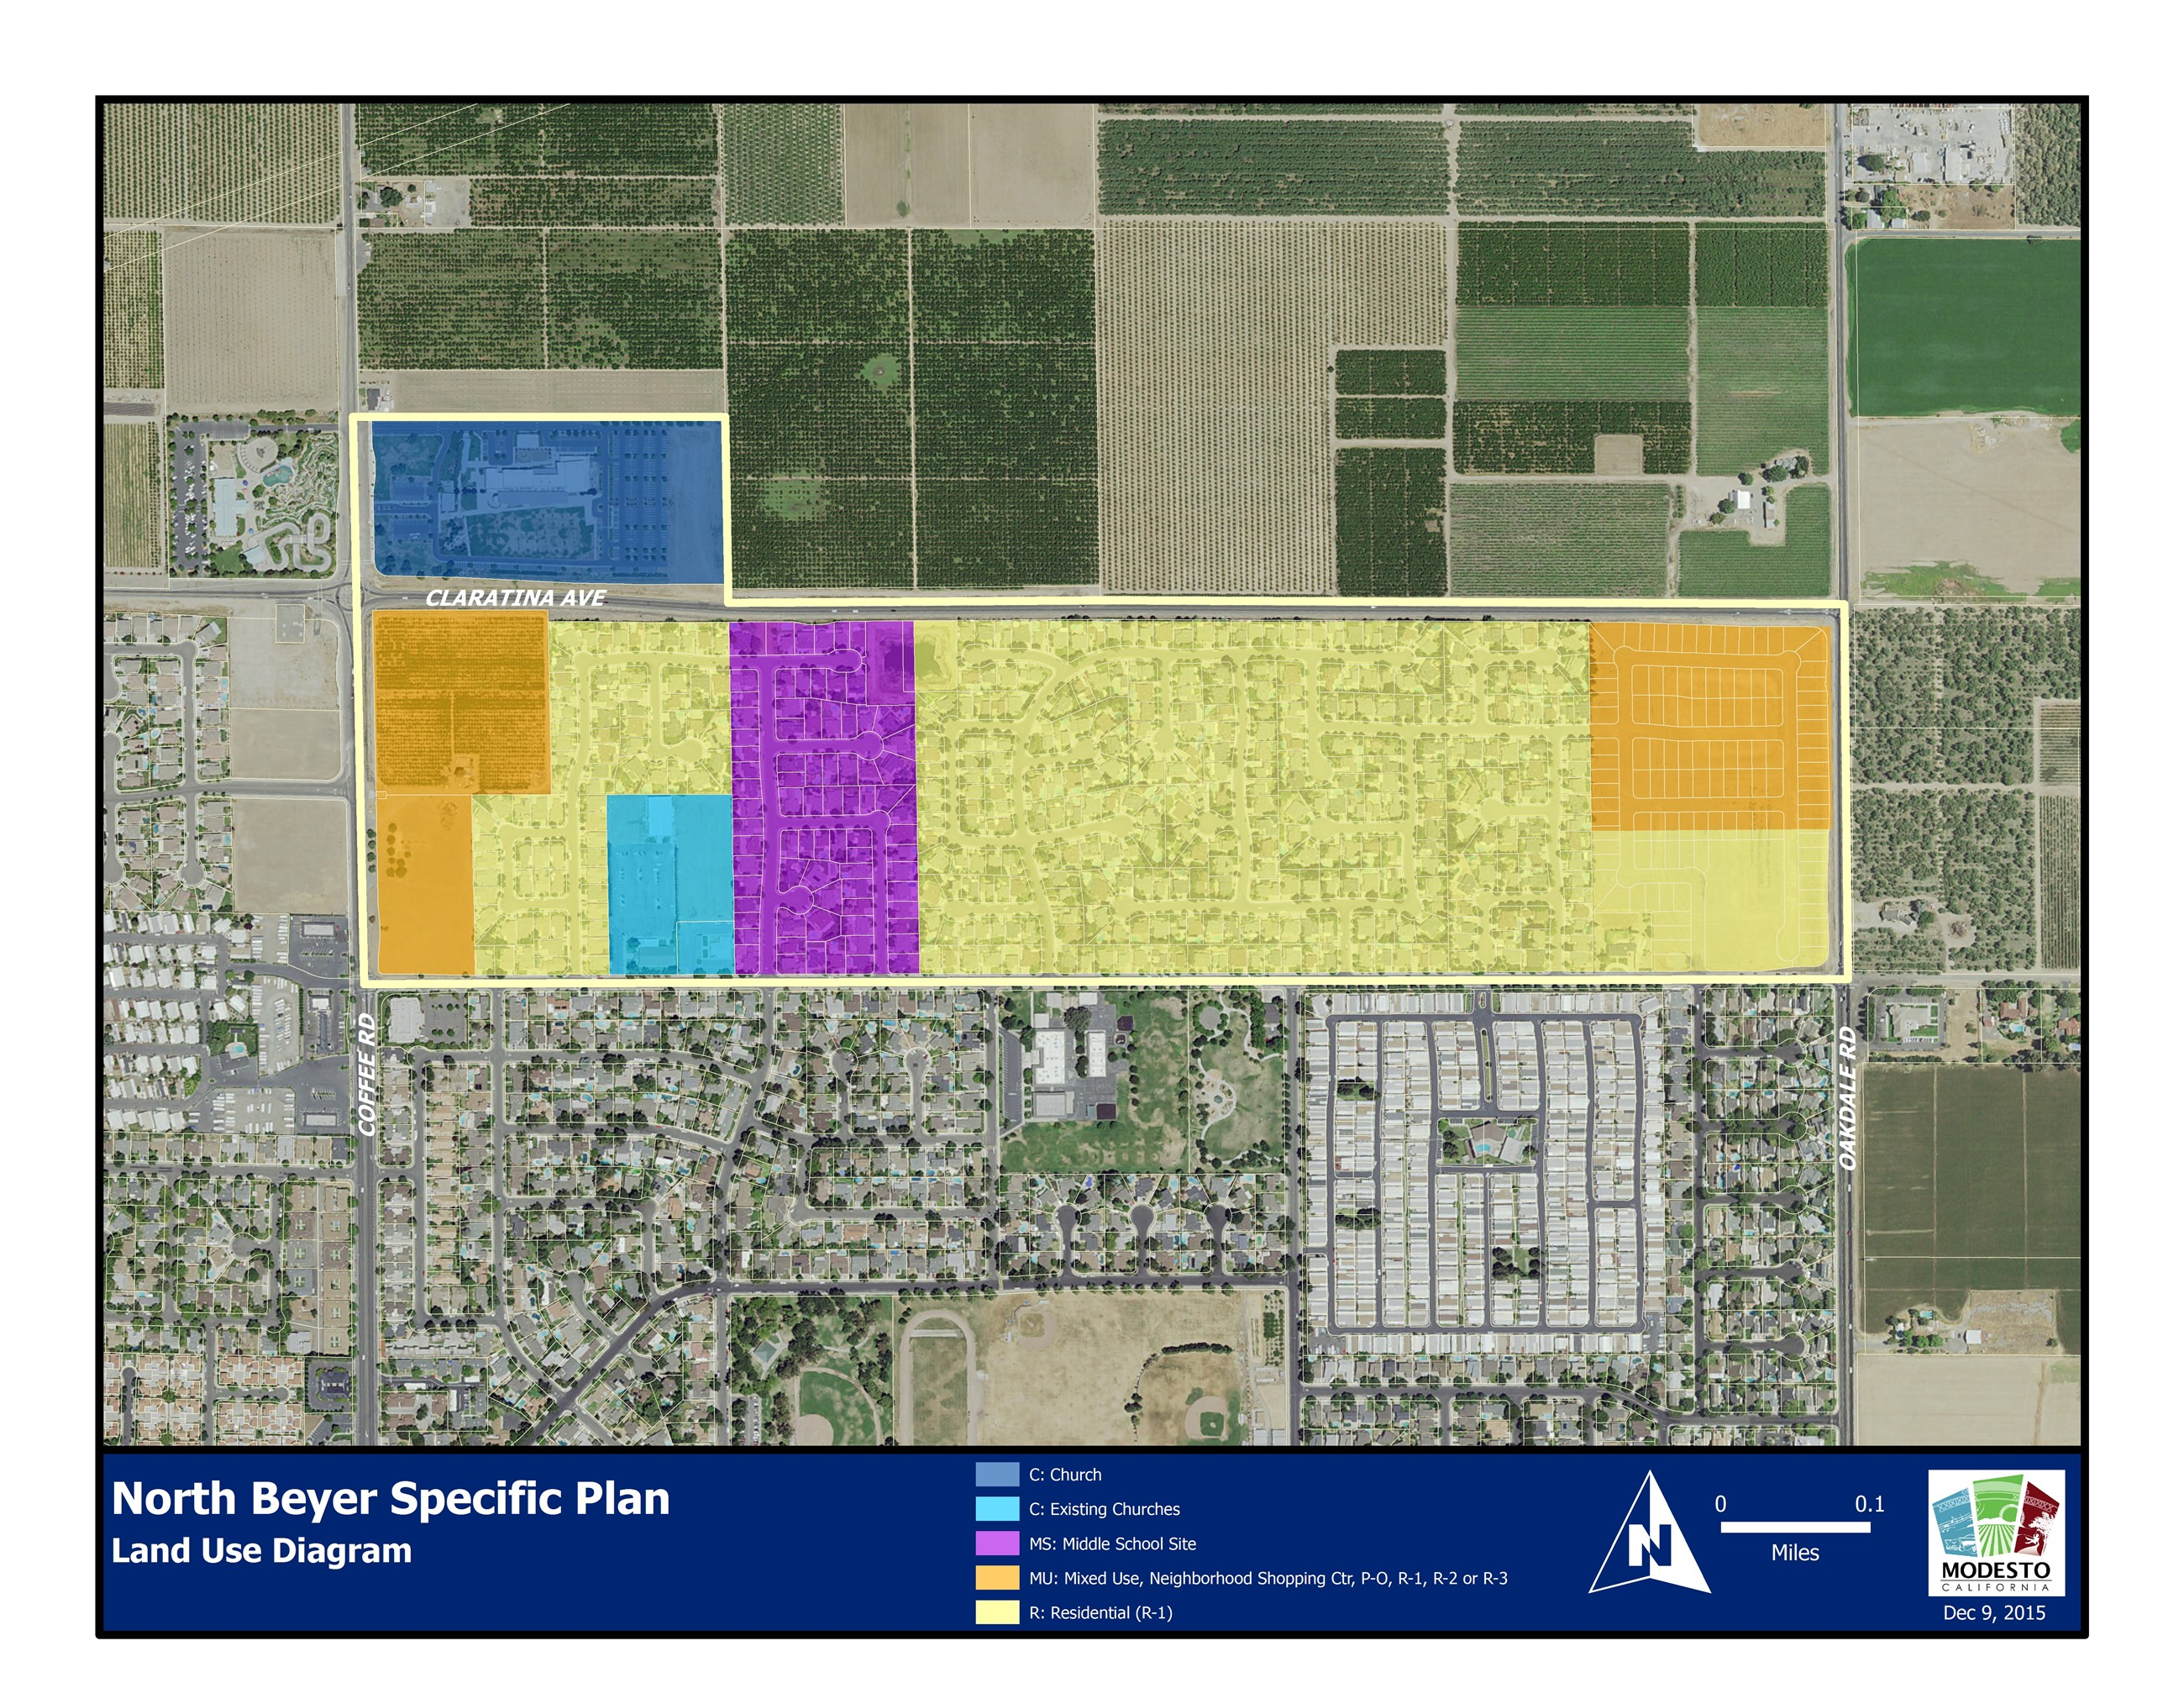 North Beyer Specific Plan Land Use Diagram